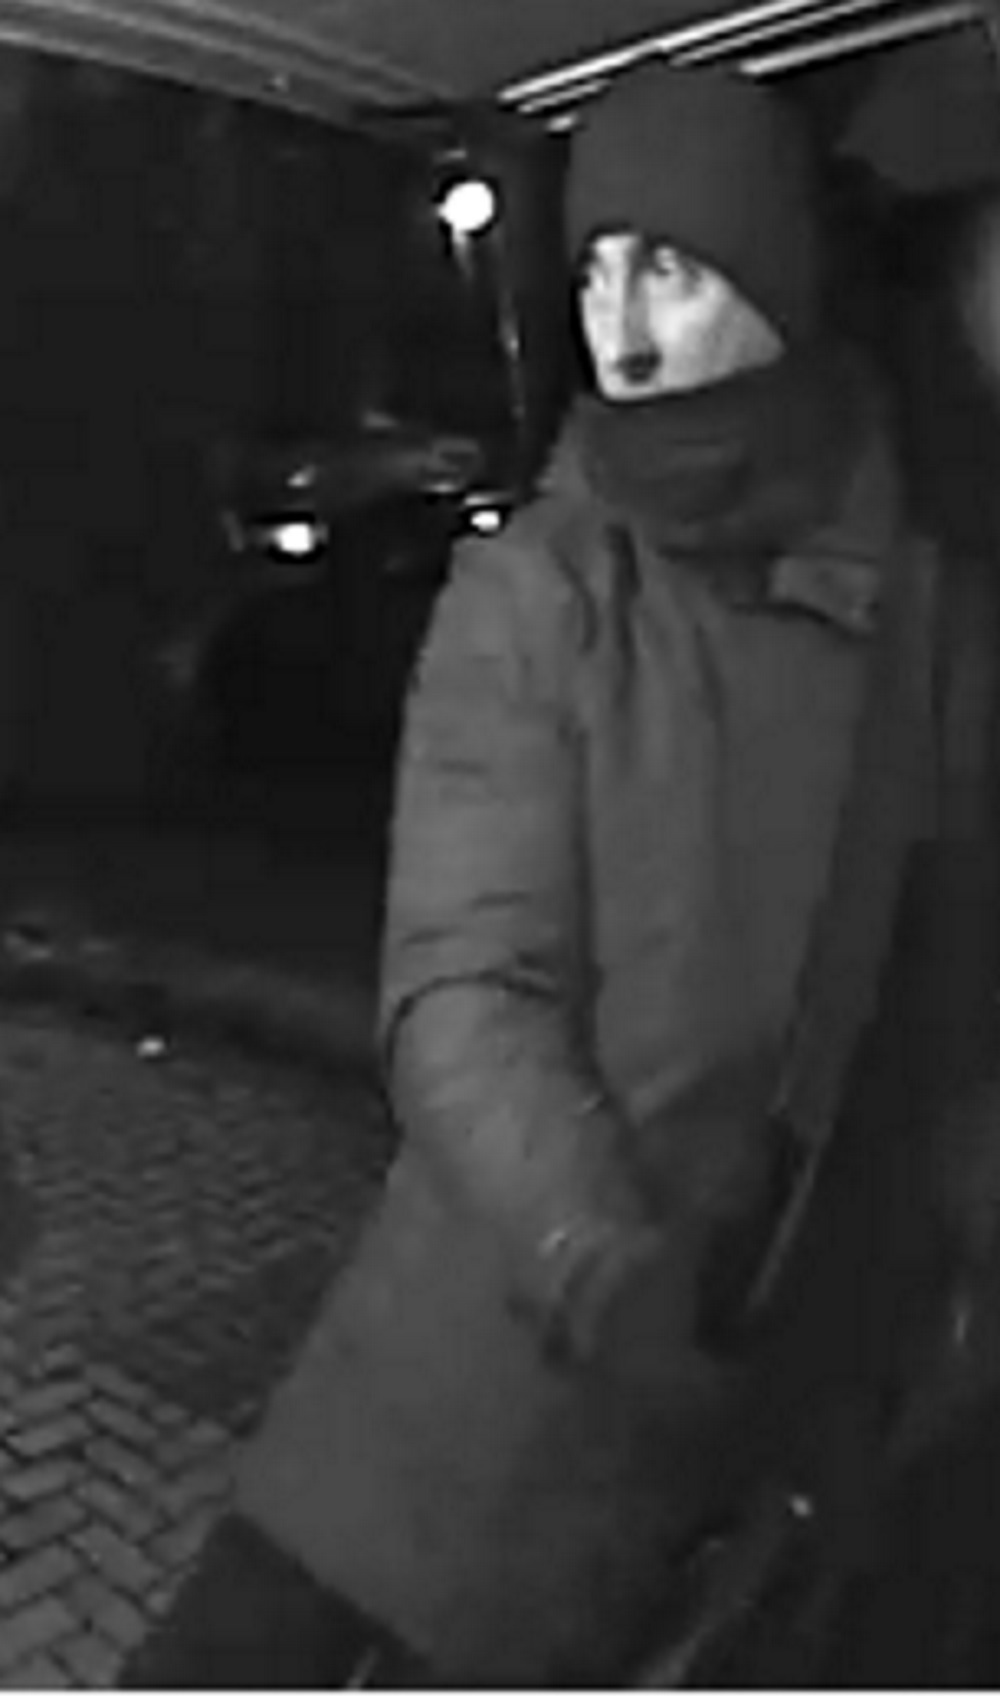 POLICE: If anyone recognises this man they should call GMP on 101